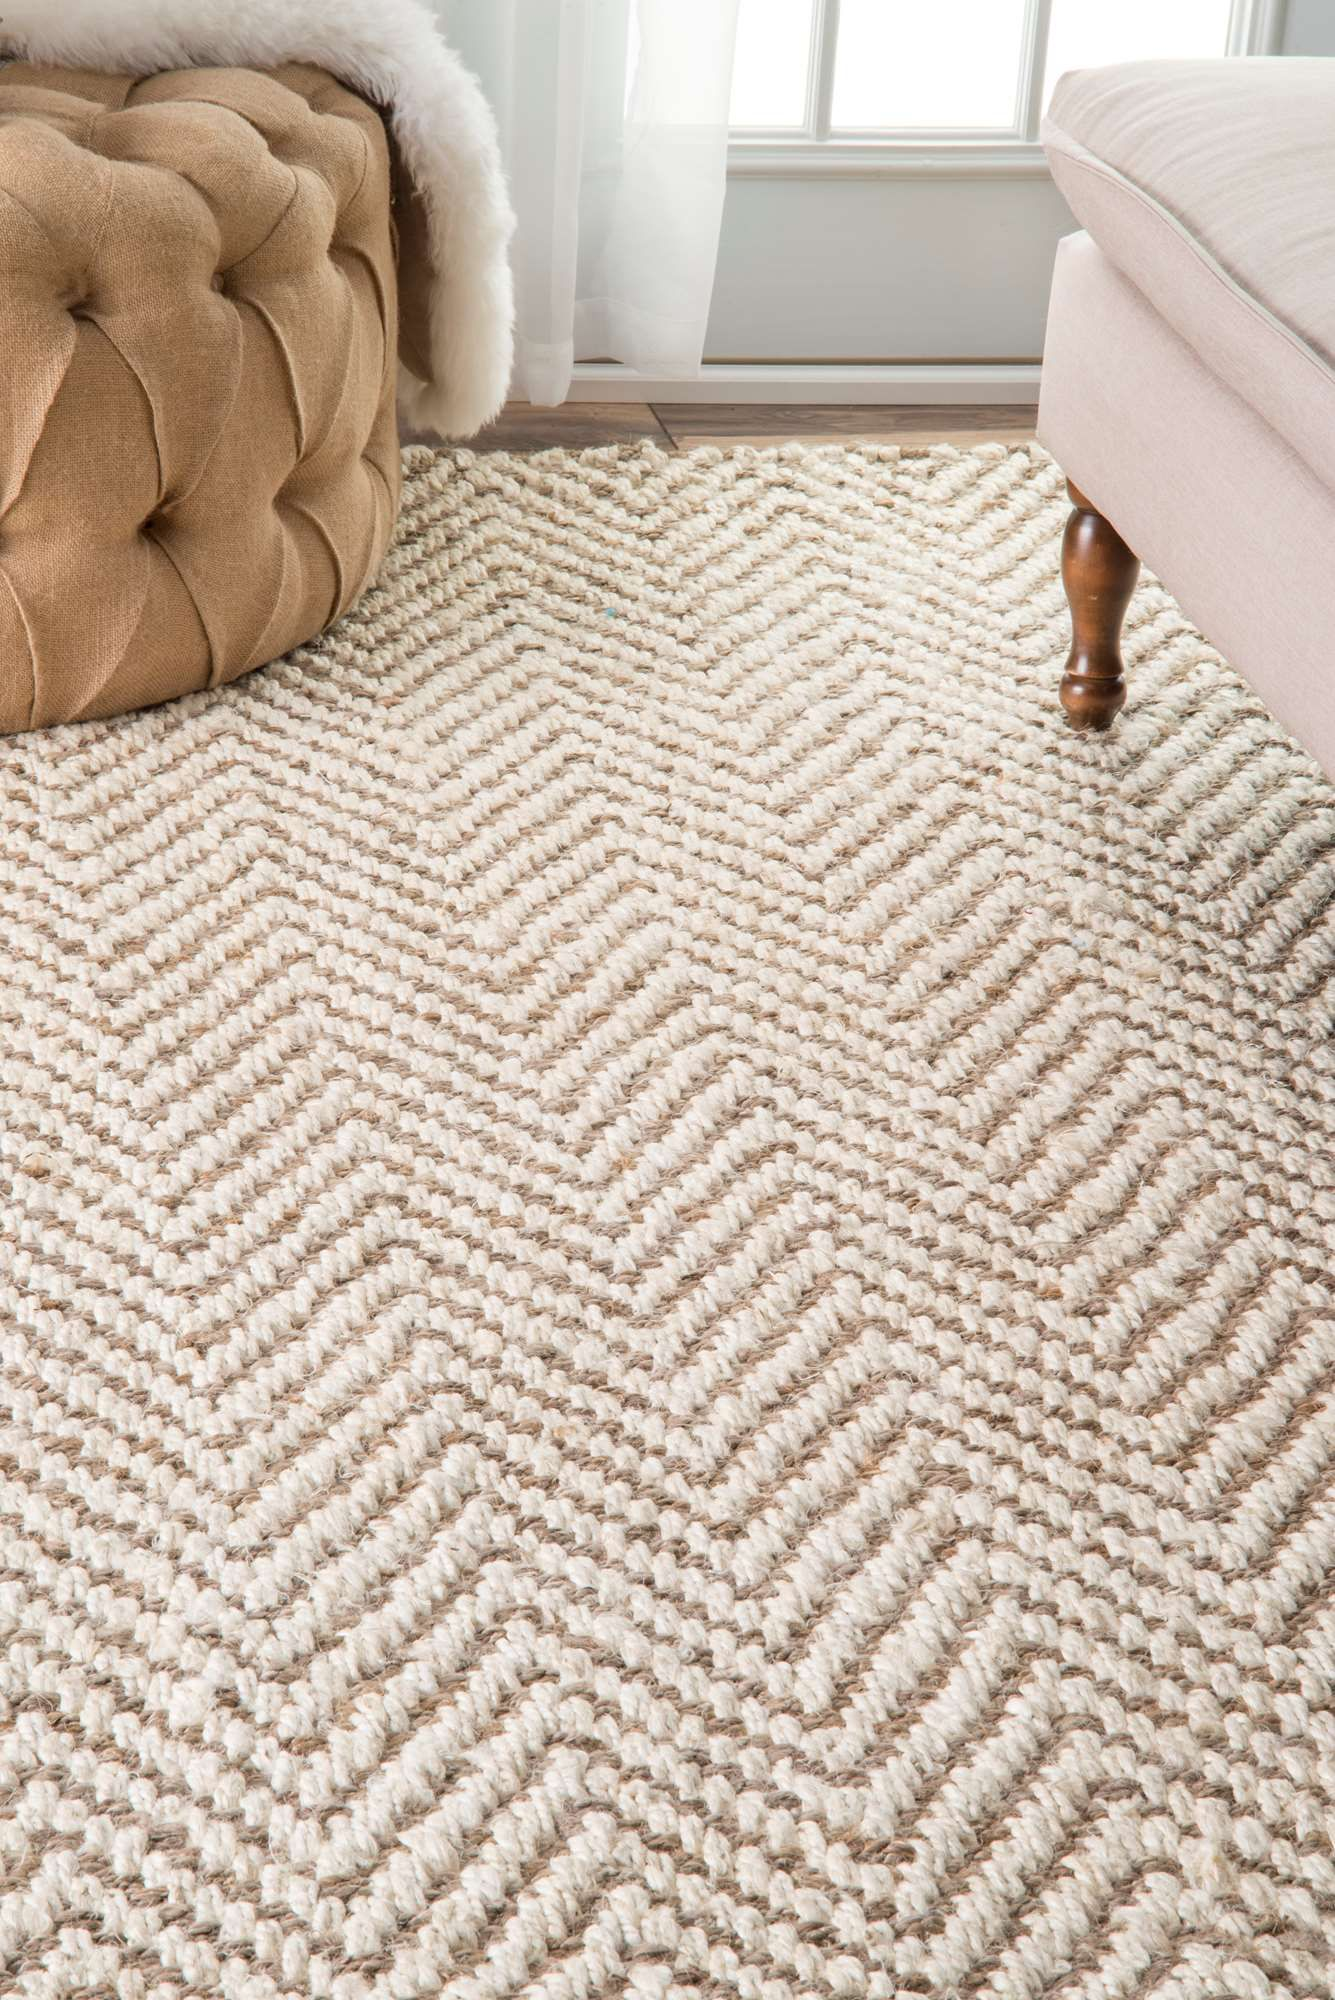 KiwaWA03 Handwoven Jute Jagged Chevron Rug | Next House | Pinterest ...